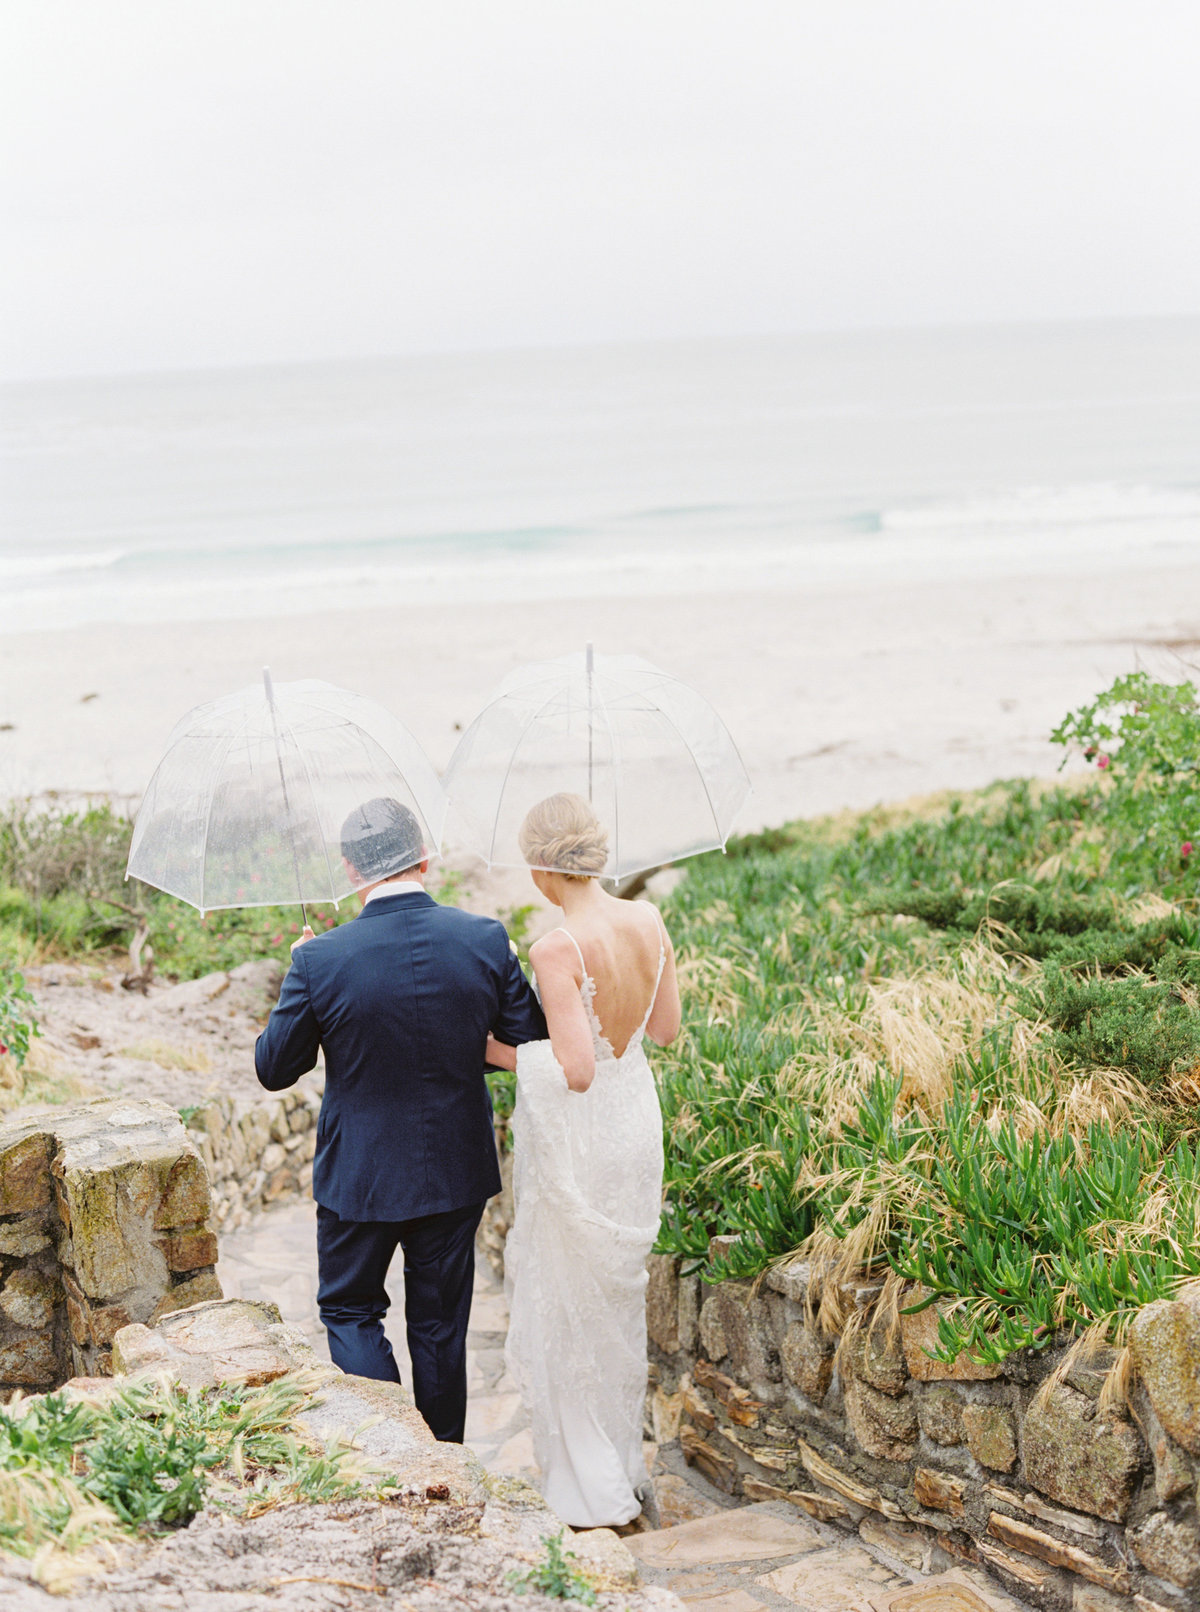 Ashley + Josh La Playa Carmel Wedding | Cassie Valente Photography 0120